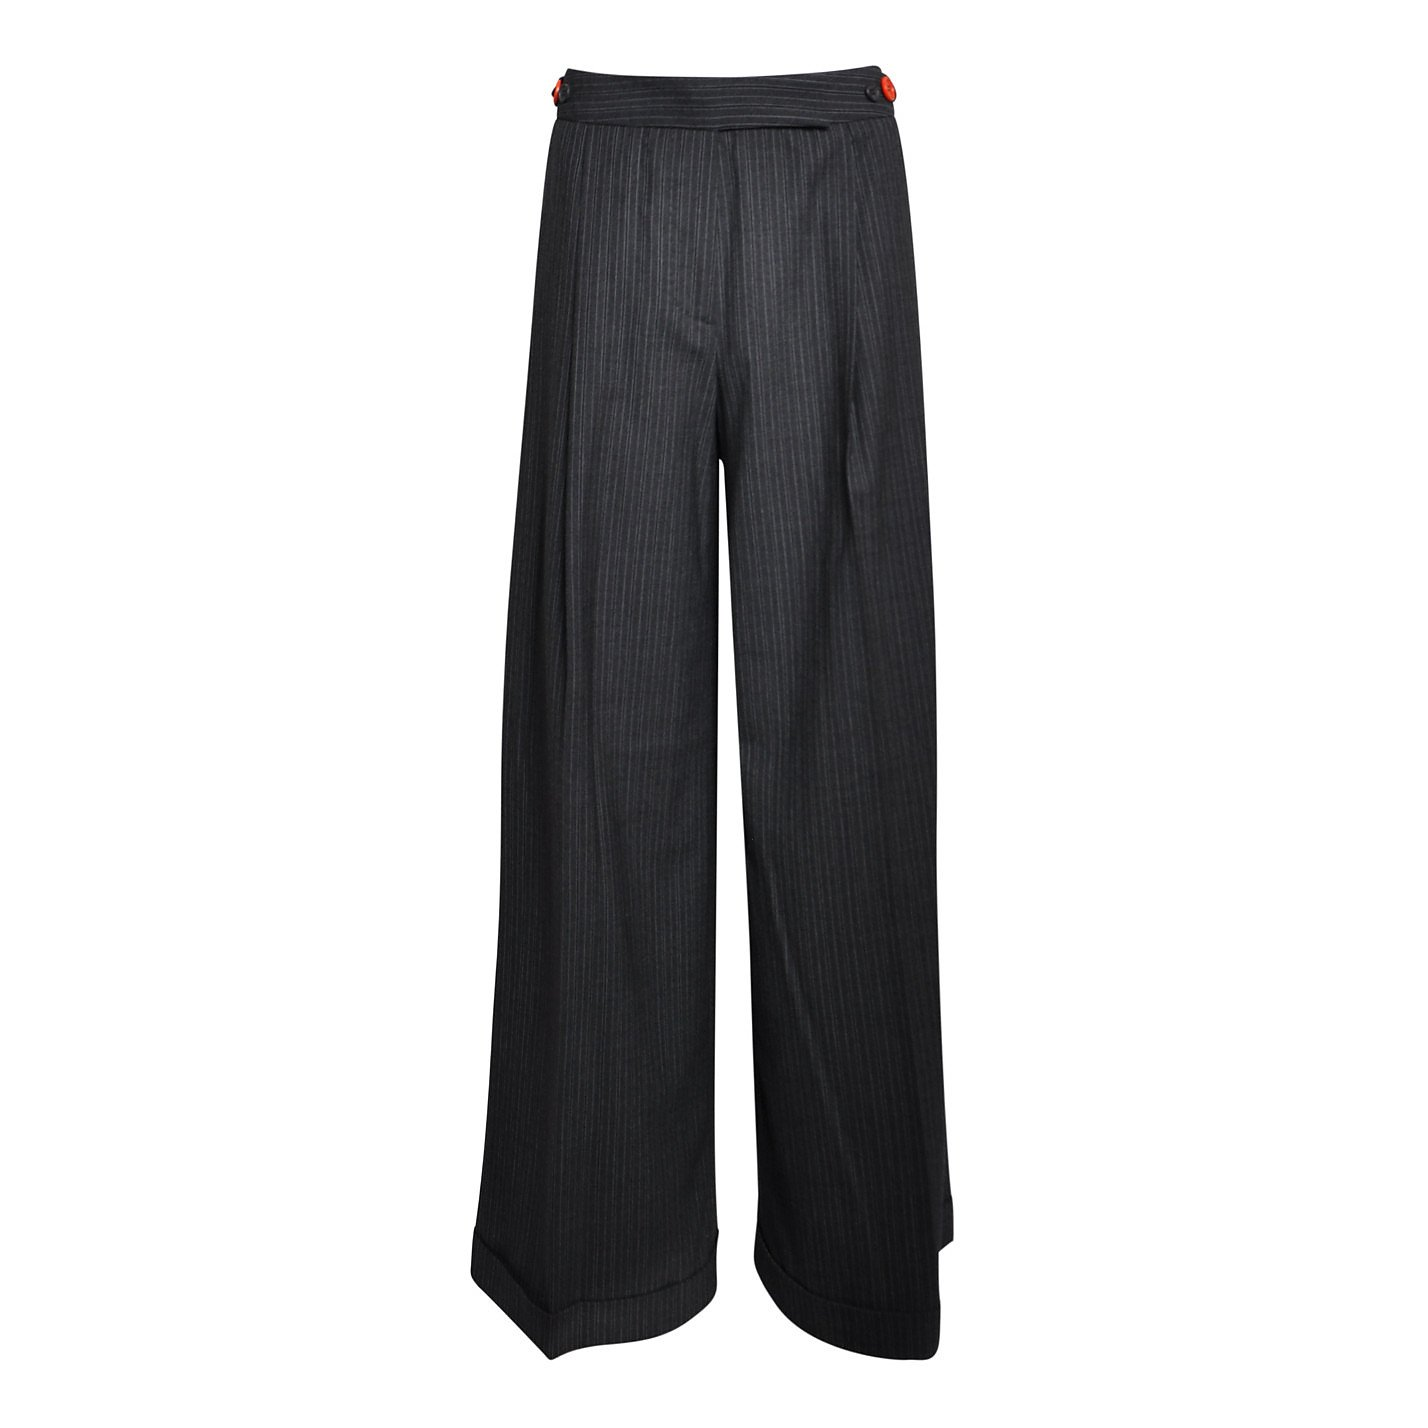 Paul Smith Pinstripe Trousers